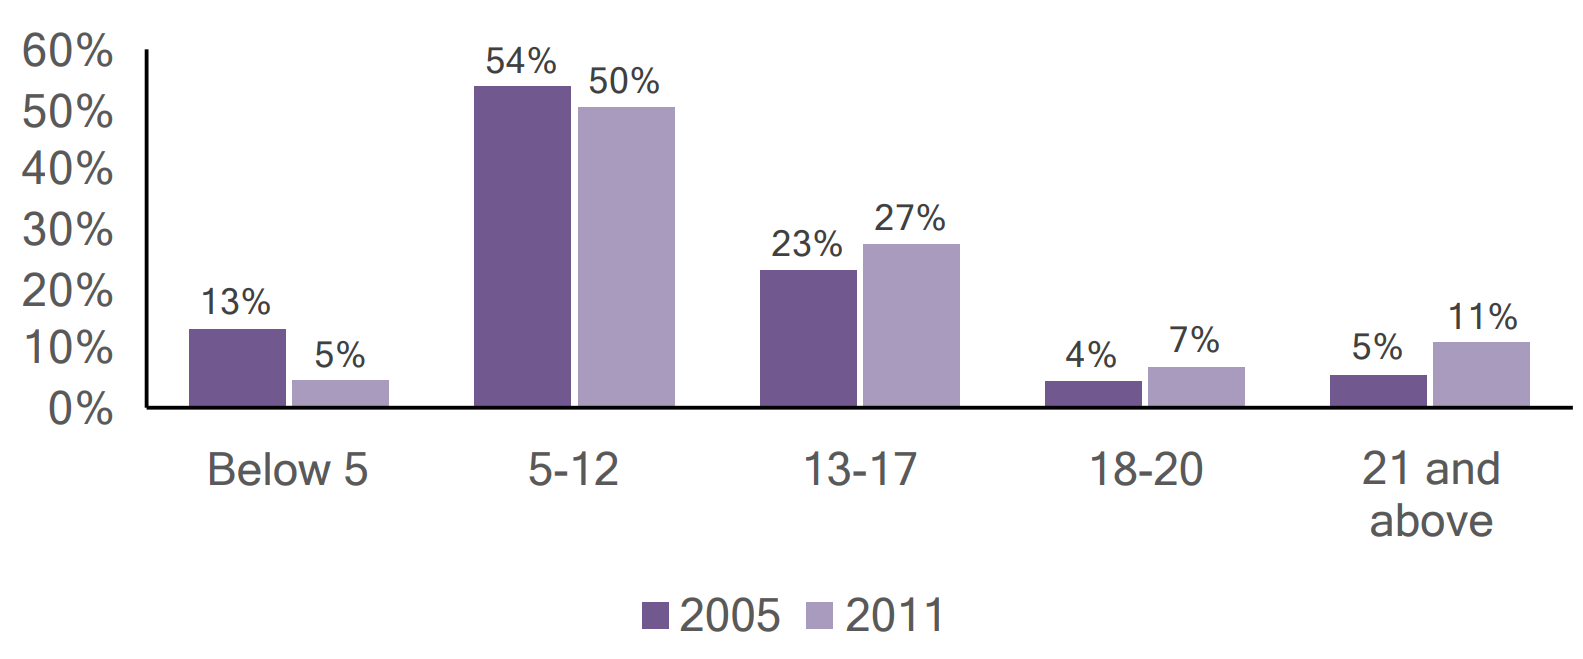 Bar graph of individuals with autism in Carbon county by age, comparing 2005 and 2011 data.